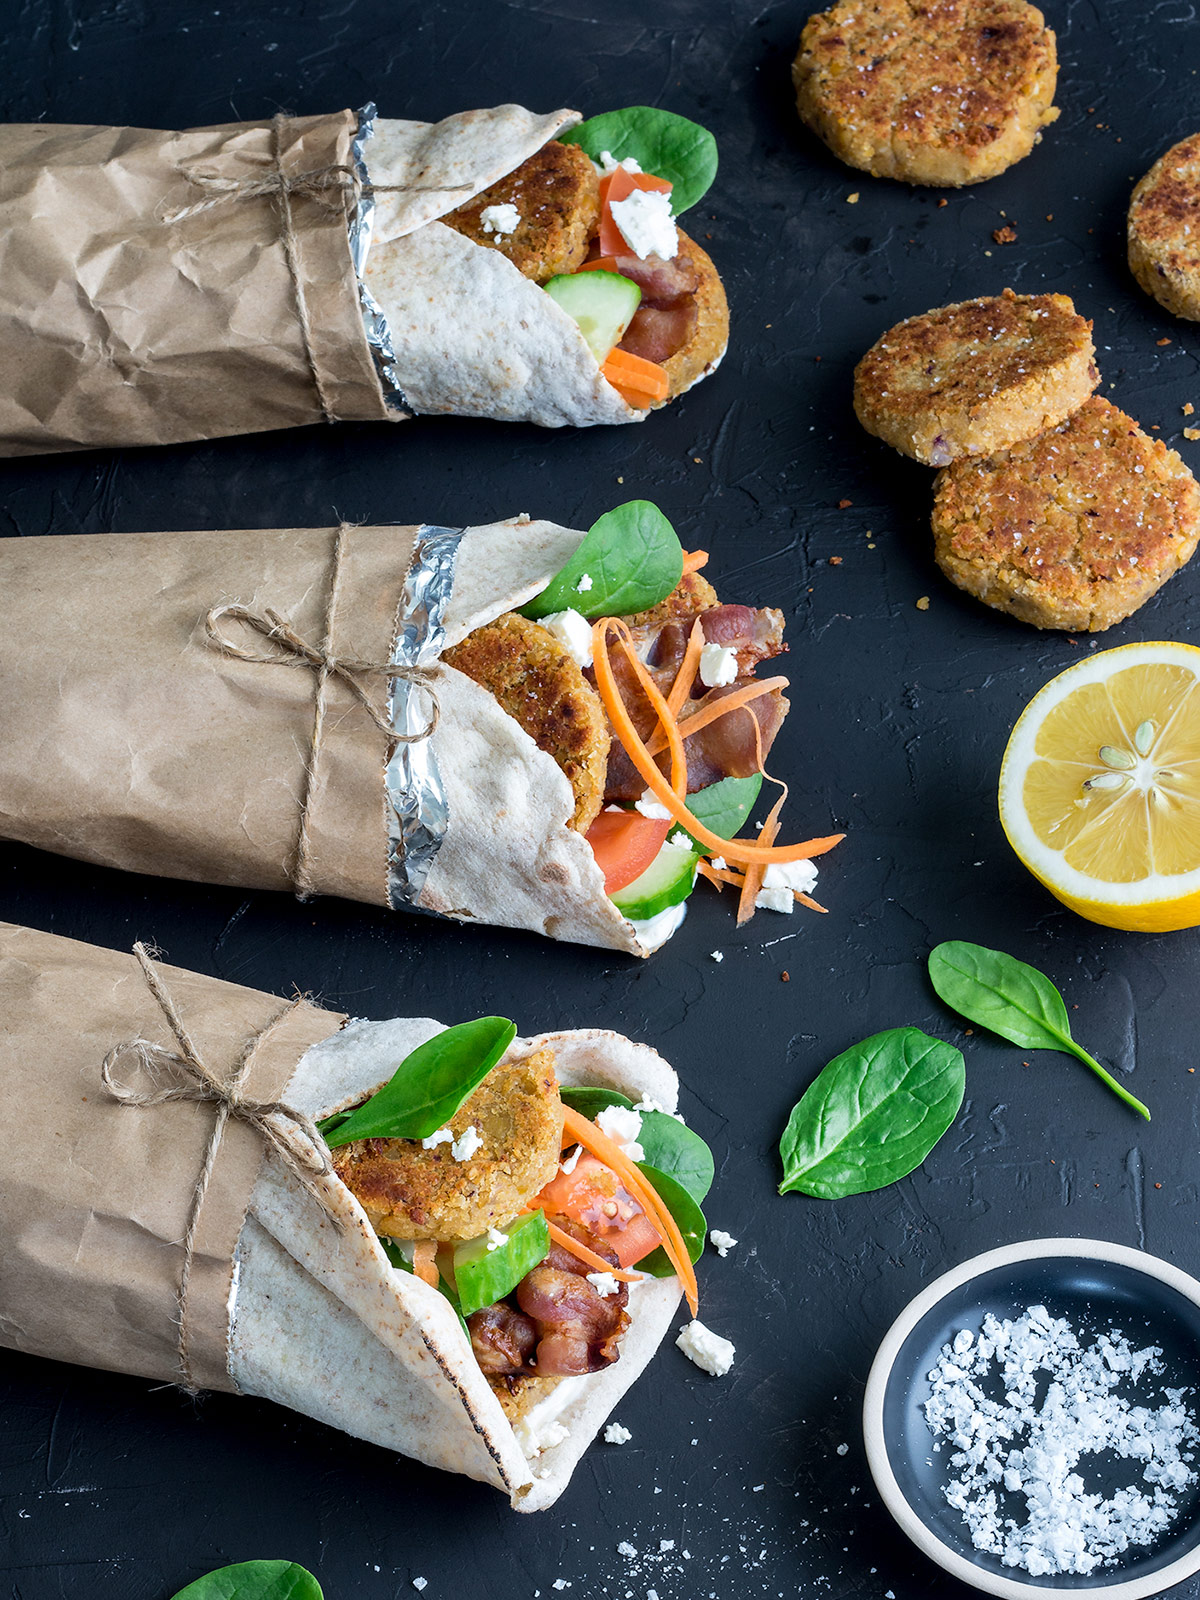 Homemade falafel kebabs are an easy, quick dinner. Make them as a vegetarian meal or up the delicious factor with the addition of bacon!